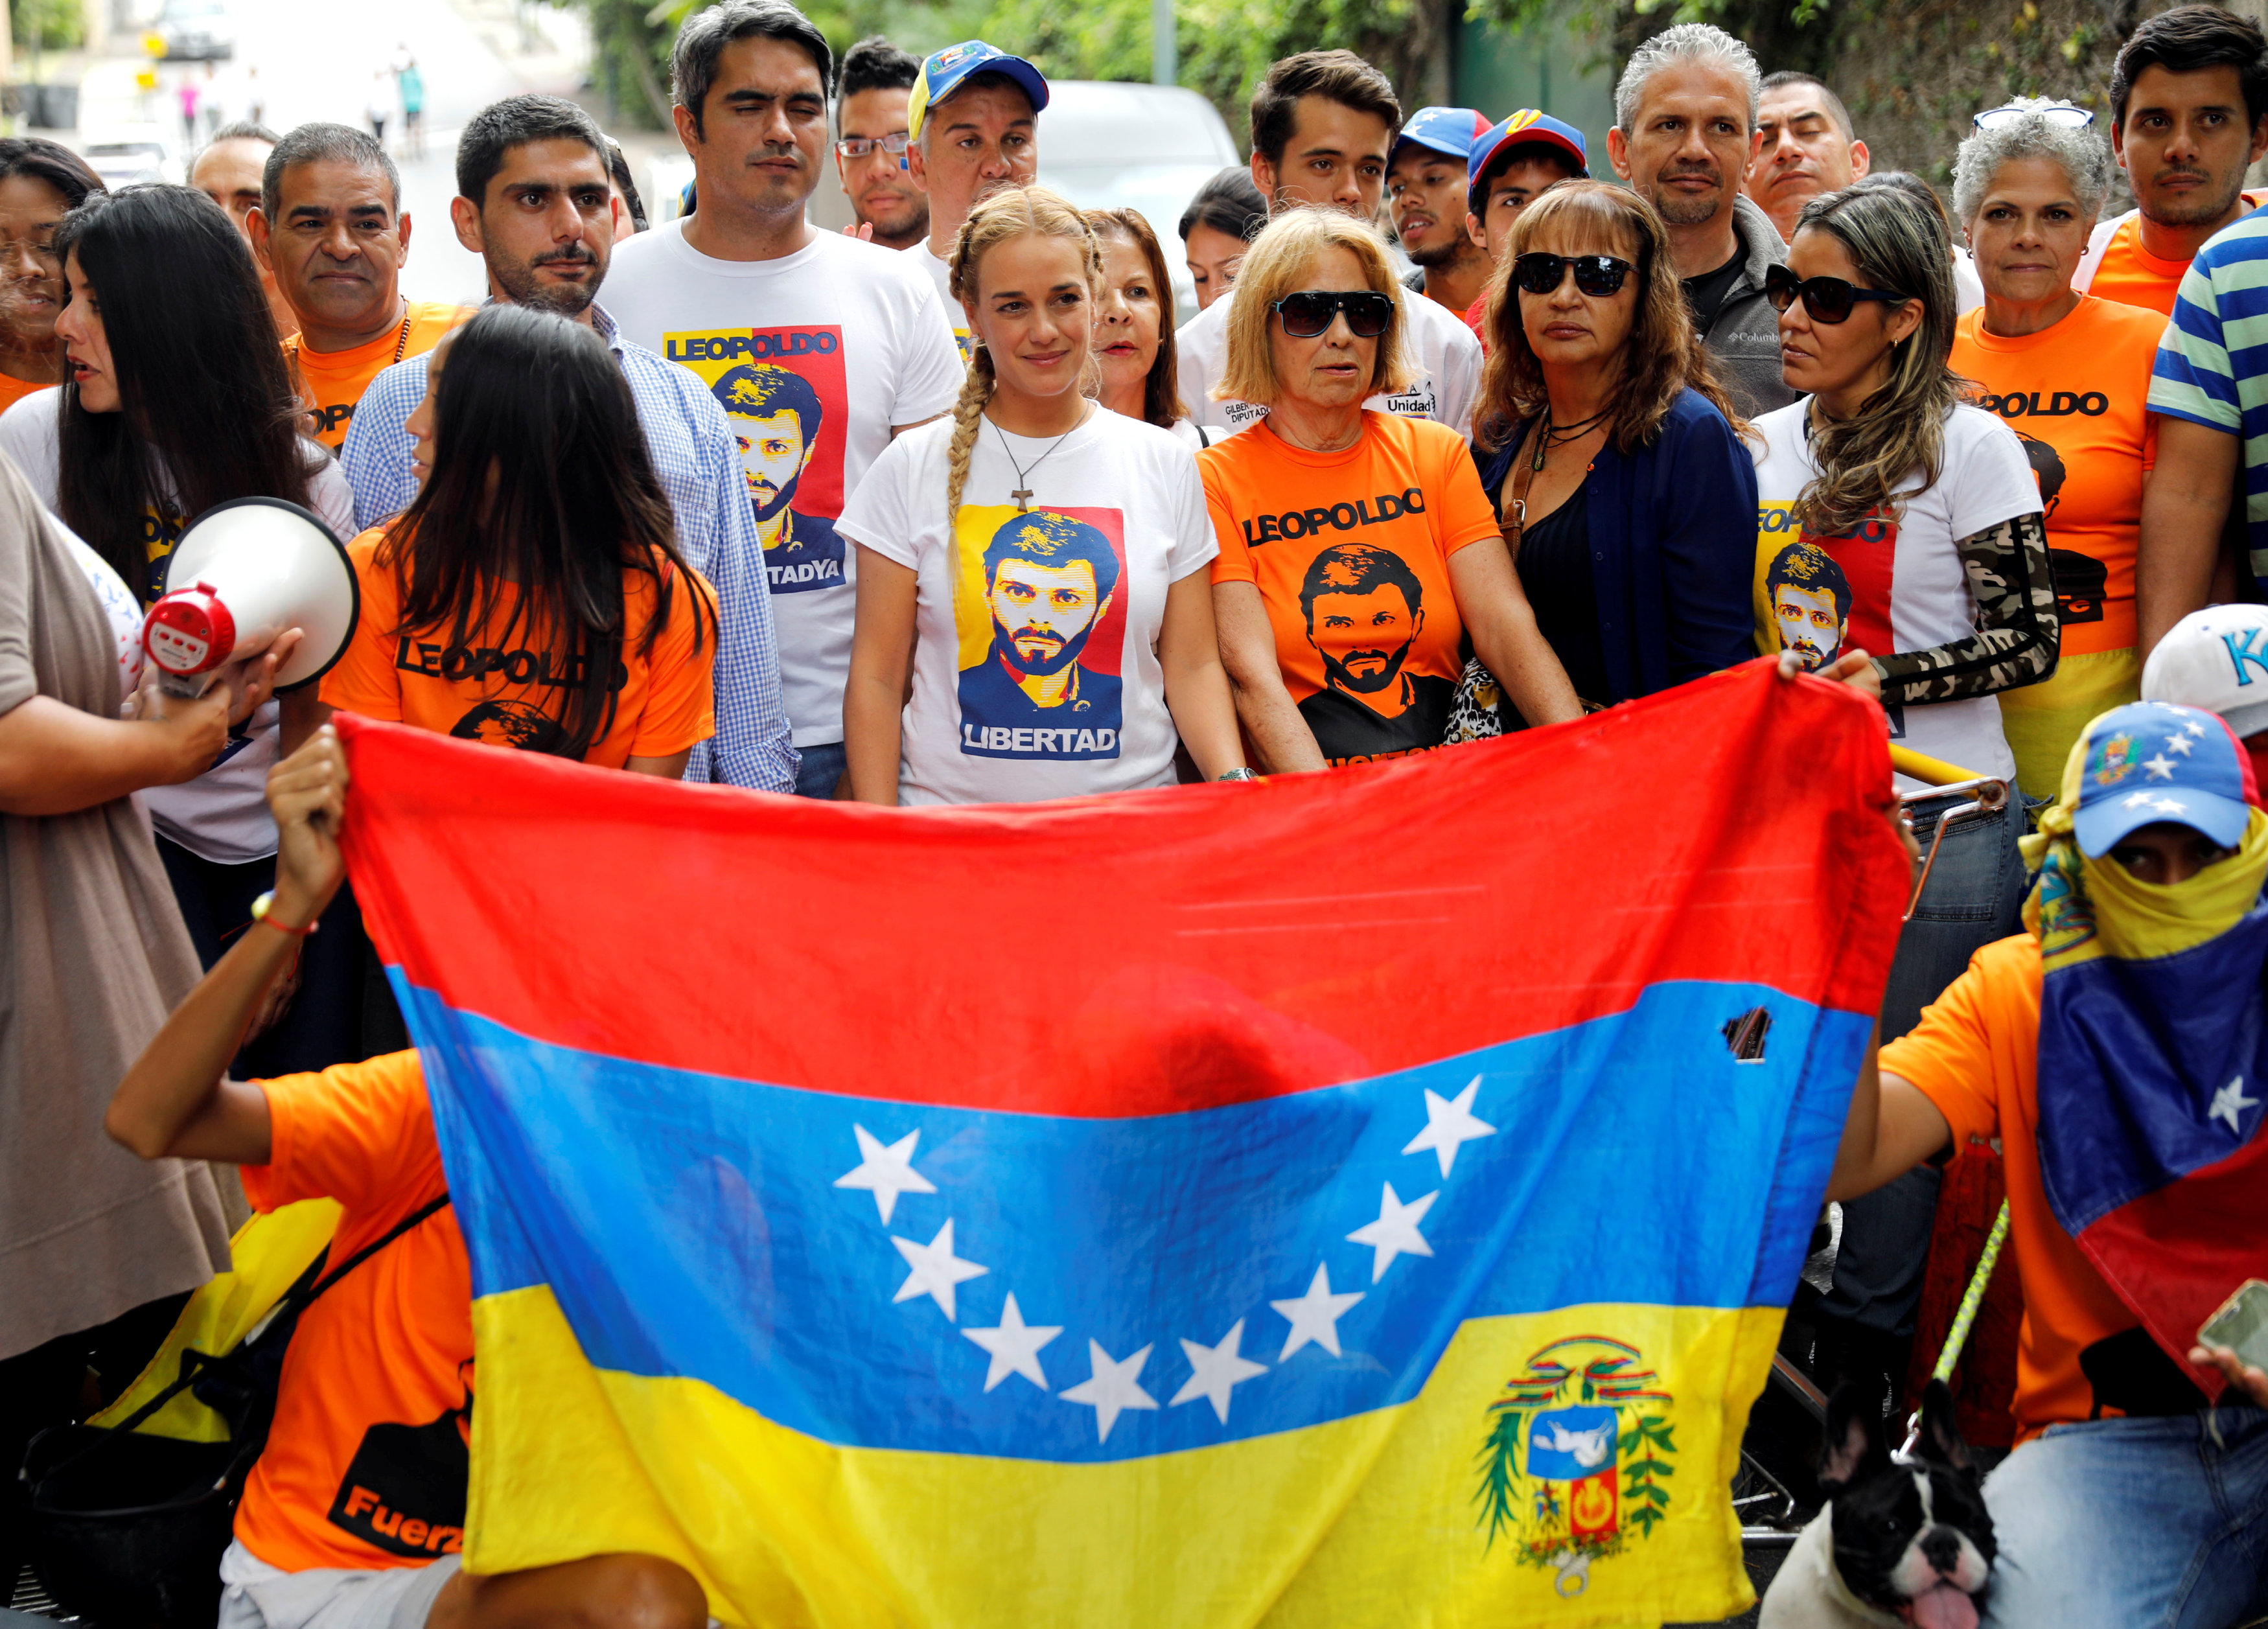 Lilian Tintori, wife of Venezuela's opposition leader Leopoldo Lopez, who has been granted house arrest after more than three years in jail, poses with supporters outside their home in Caracas, Venezuela July 10, 2017. REUTERS/Andres Martinez Casares